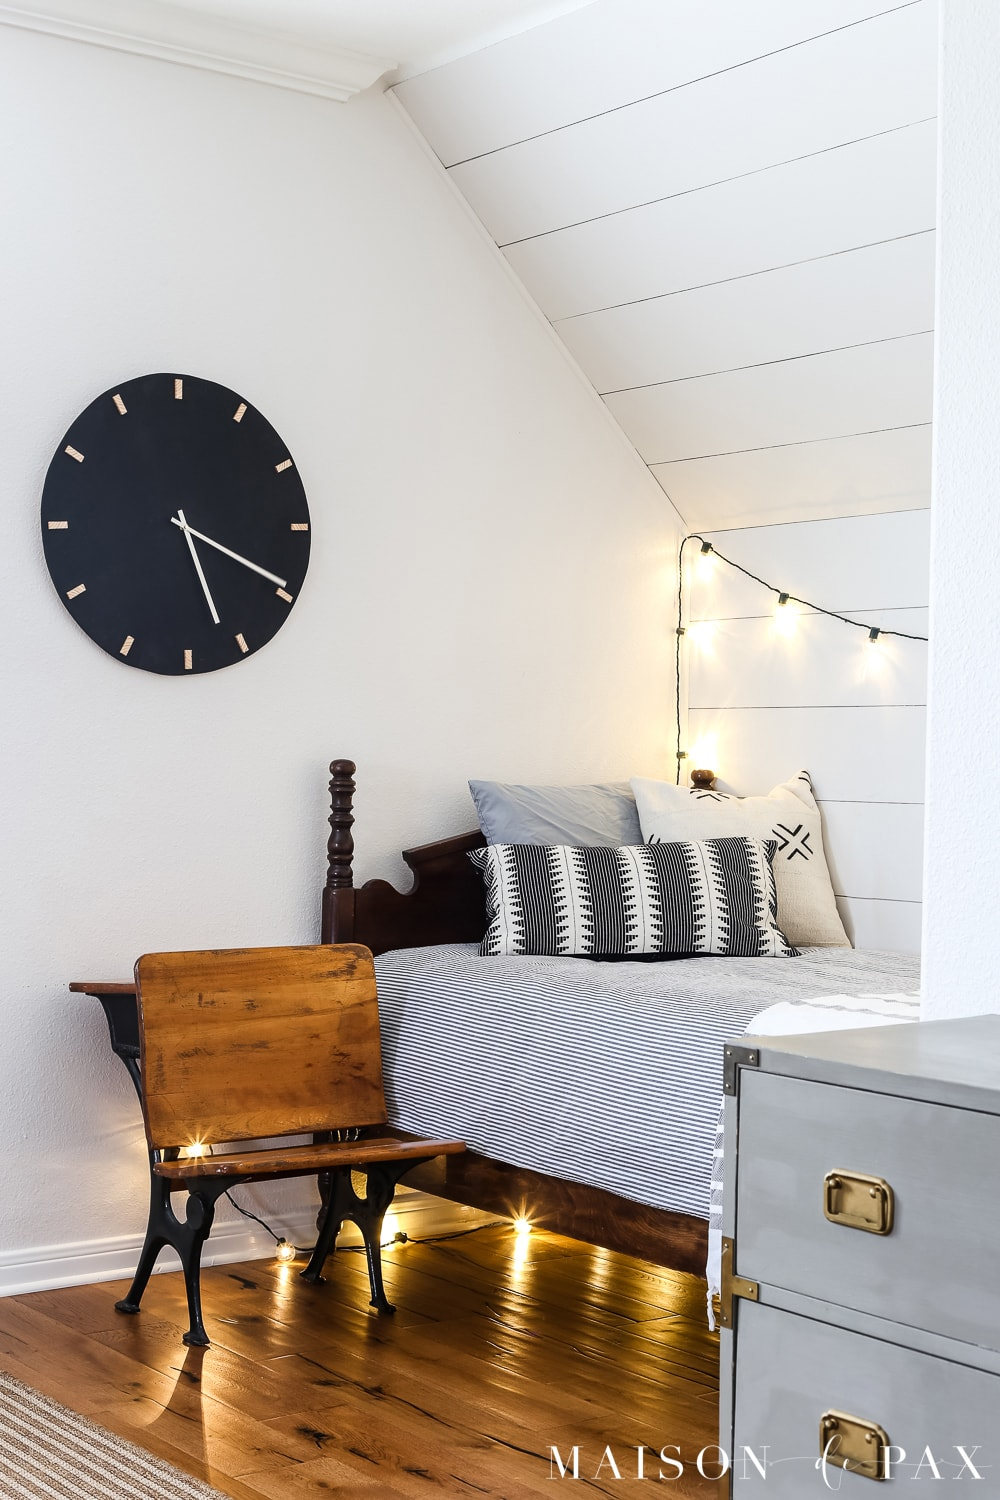 Love the big black clock on the white walls?  Learn how to make this DIY black and wood giant wall clock for cheap! #wallart #diywallart #diyclock #wallclock #giantclock #modernfarmhouse #neutraldecor #kidsroom #boyroom #modernfarmhouse #blackandwhiteinteriors